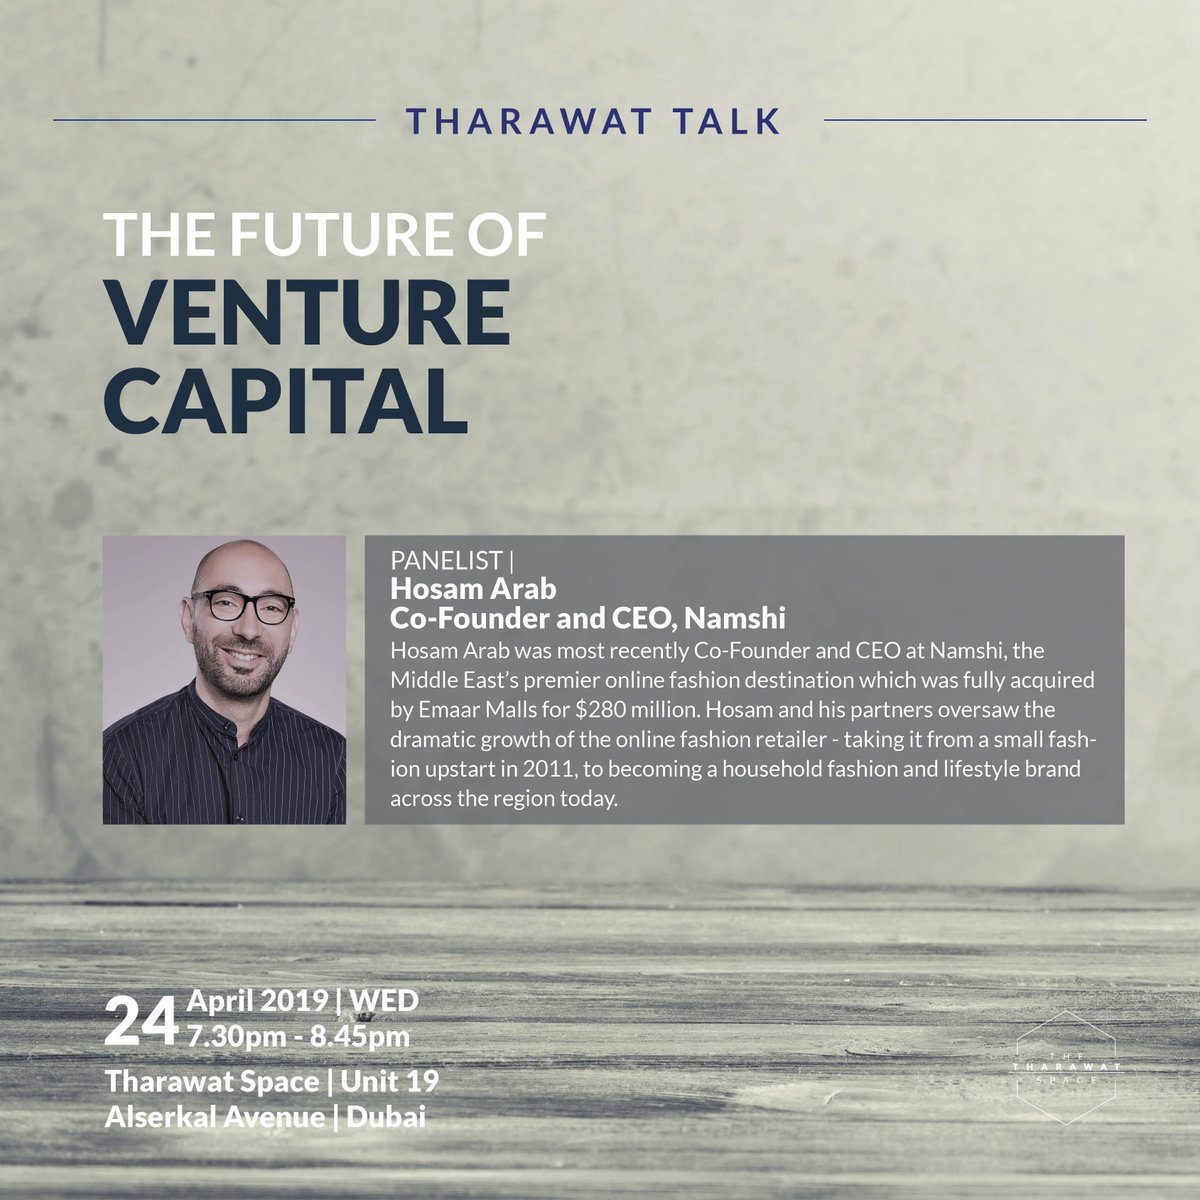 be11a3ae4 With Amjad Ahmad, Founder&Managing Partner, Precinct Partners, Sonia  Weymuller, Founding Partner, VentureSouq and Hosam Arab, Co-Founder and CEO  of Namshi ...